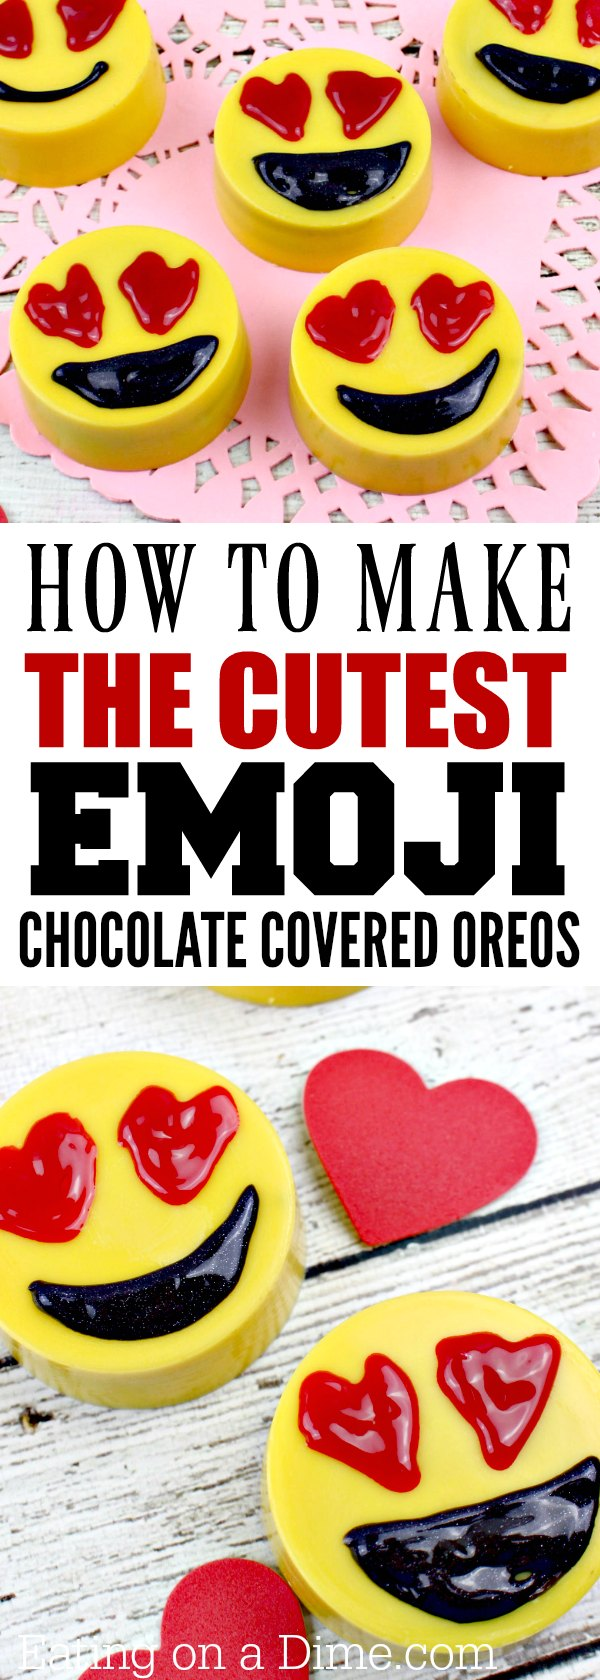 How to make Emoji Chocolate Covered Oreos - Eating on a Dime